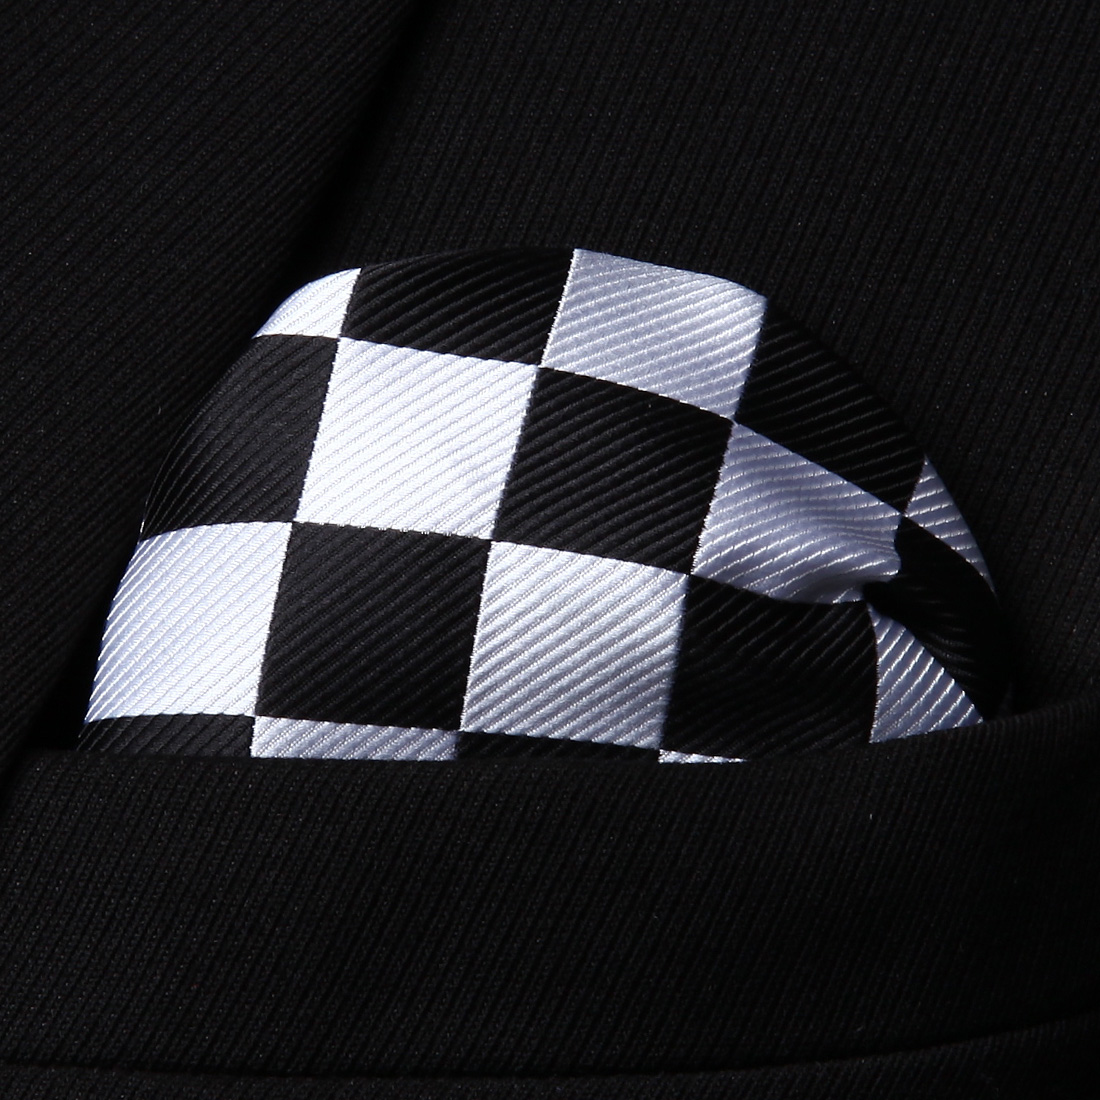 HC351L White Black Check Men 100% Silk Party Handkerchief Pocket Square Hanky